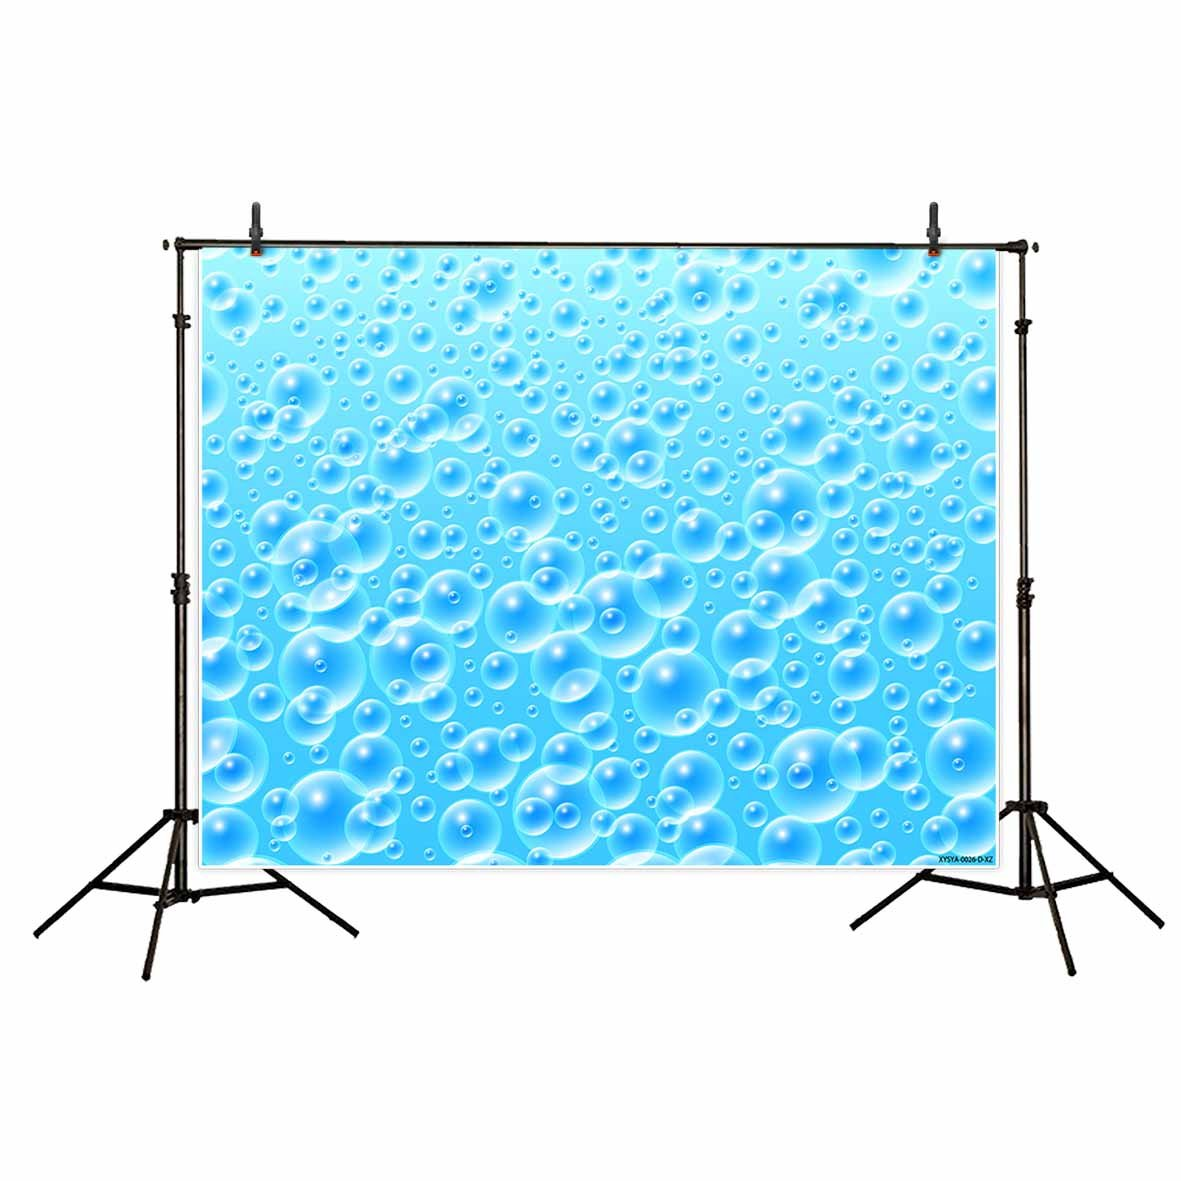 Funnytree Blue Bubble Background - Photography Backdrop - Great for Studio, Booth, Summer Party, Photo, Wedding, Business Use, 7x5 Ft